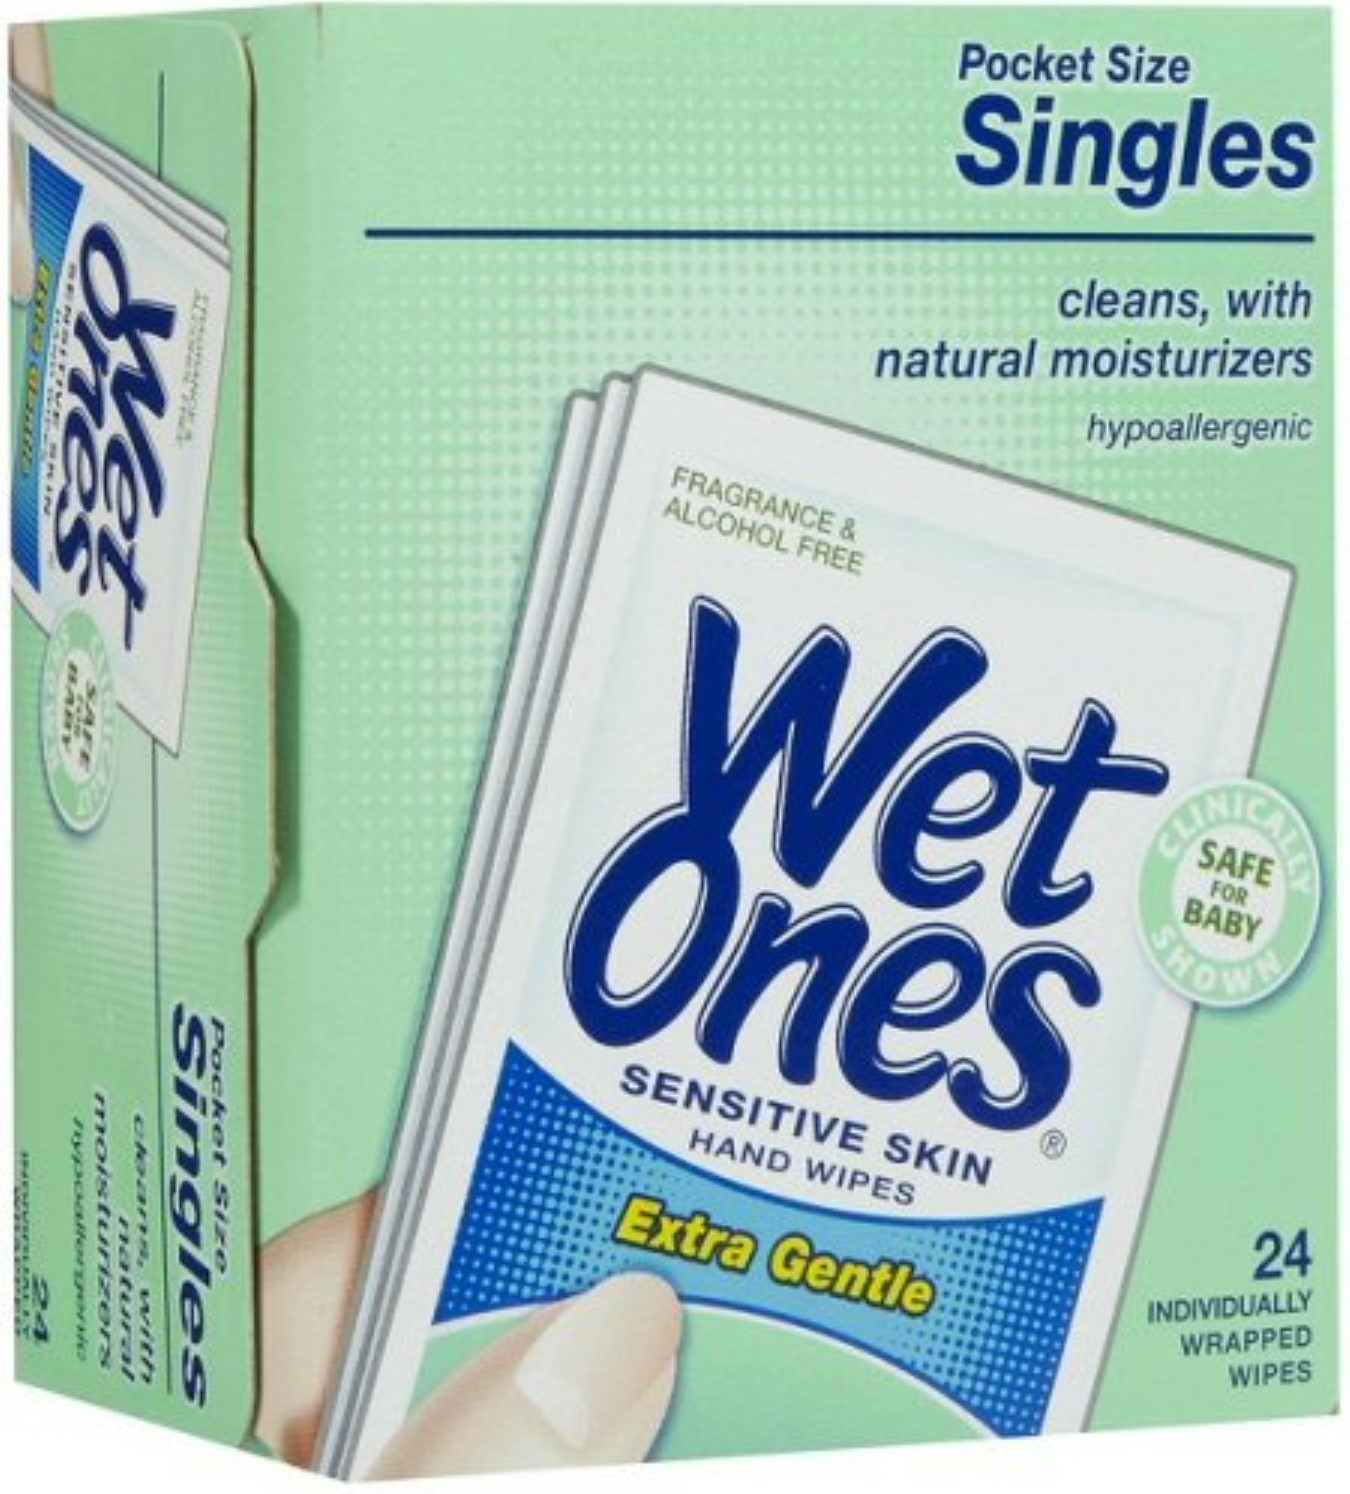 WET ONES Sensitive Skin Hand & Face Wipes, Singles, Fragrance Free  24 ea (Pack of 4)